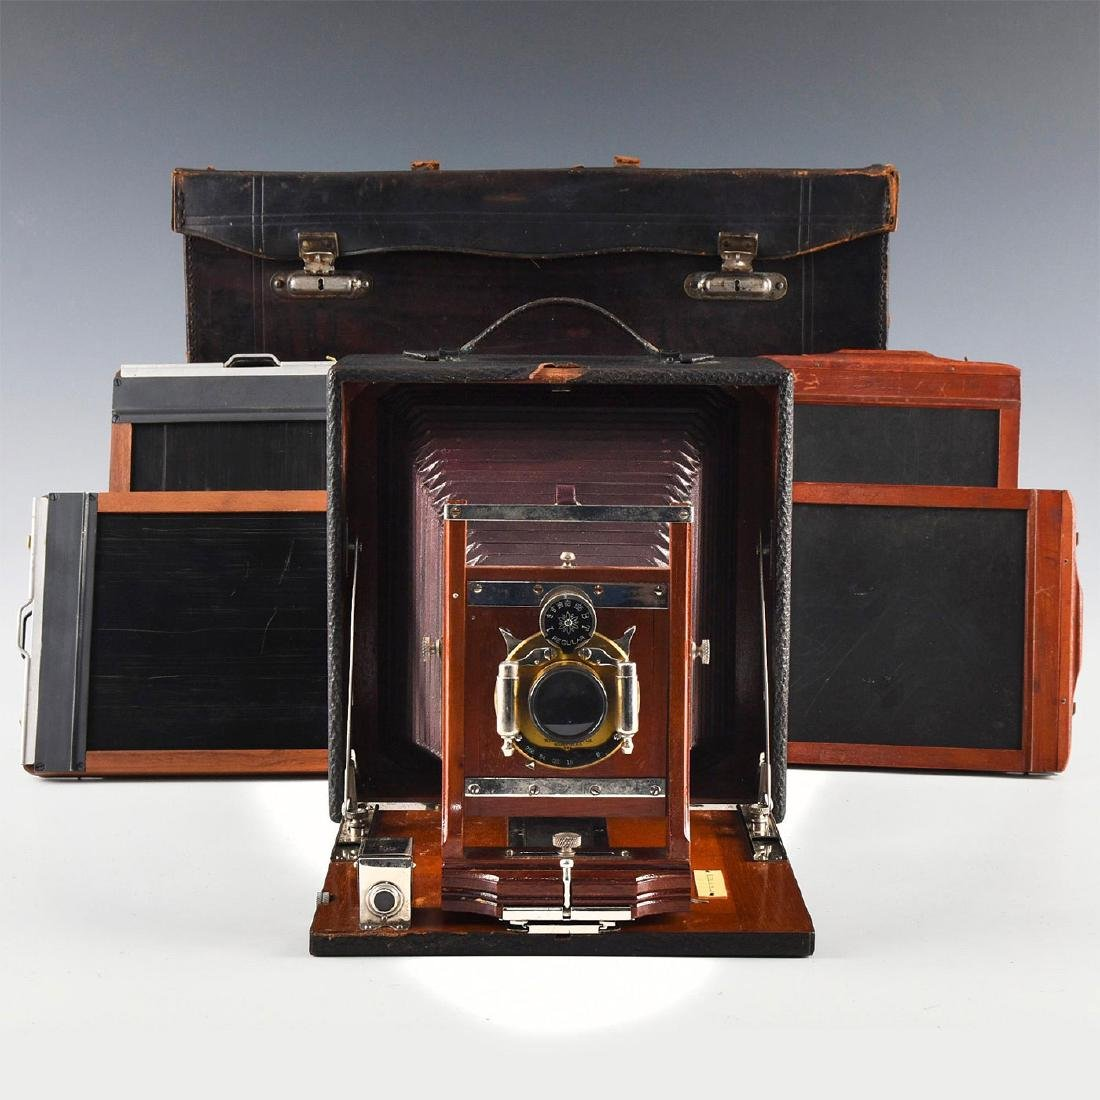 ANTIQUE FOLDING PLATE CAMERA WITH CASE, PLATE HOLDERS